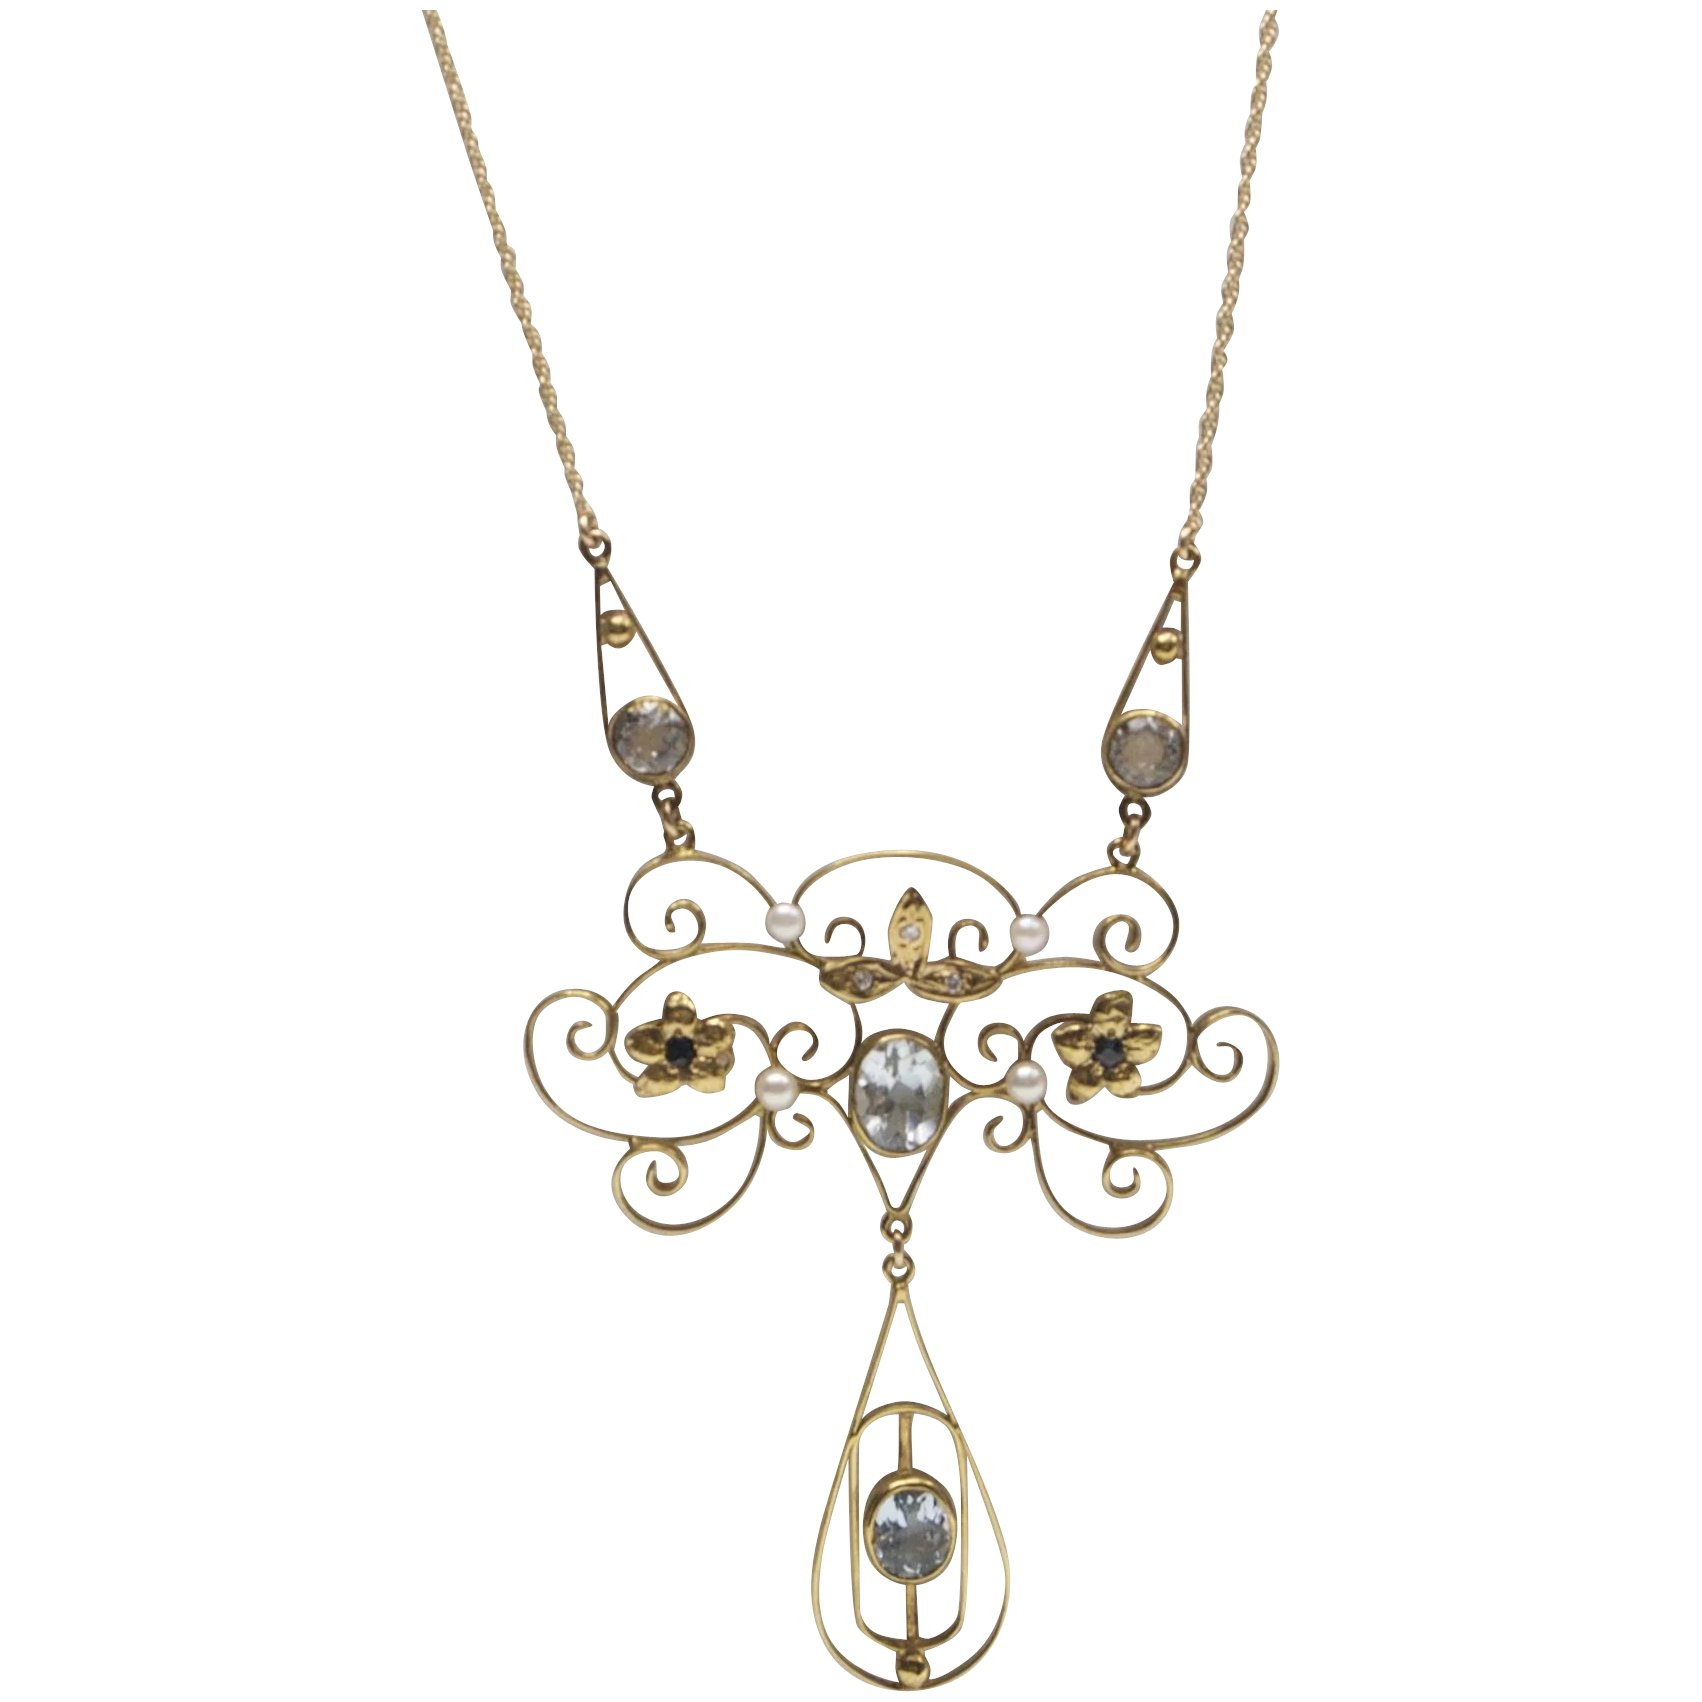 Edwardian Diamond, Pearl, Aquamarine And Sapphire 14 Kt Gold Necklace Within Most Current Sapphire, Aquamarine And Diamond Necklaces (View 11 of 25)